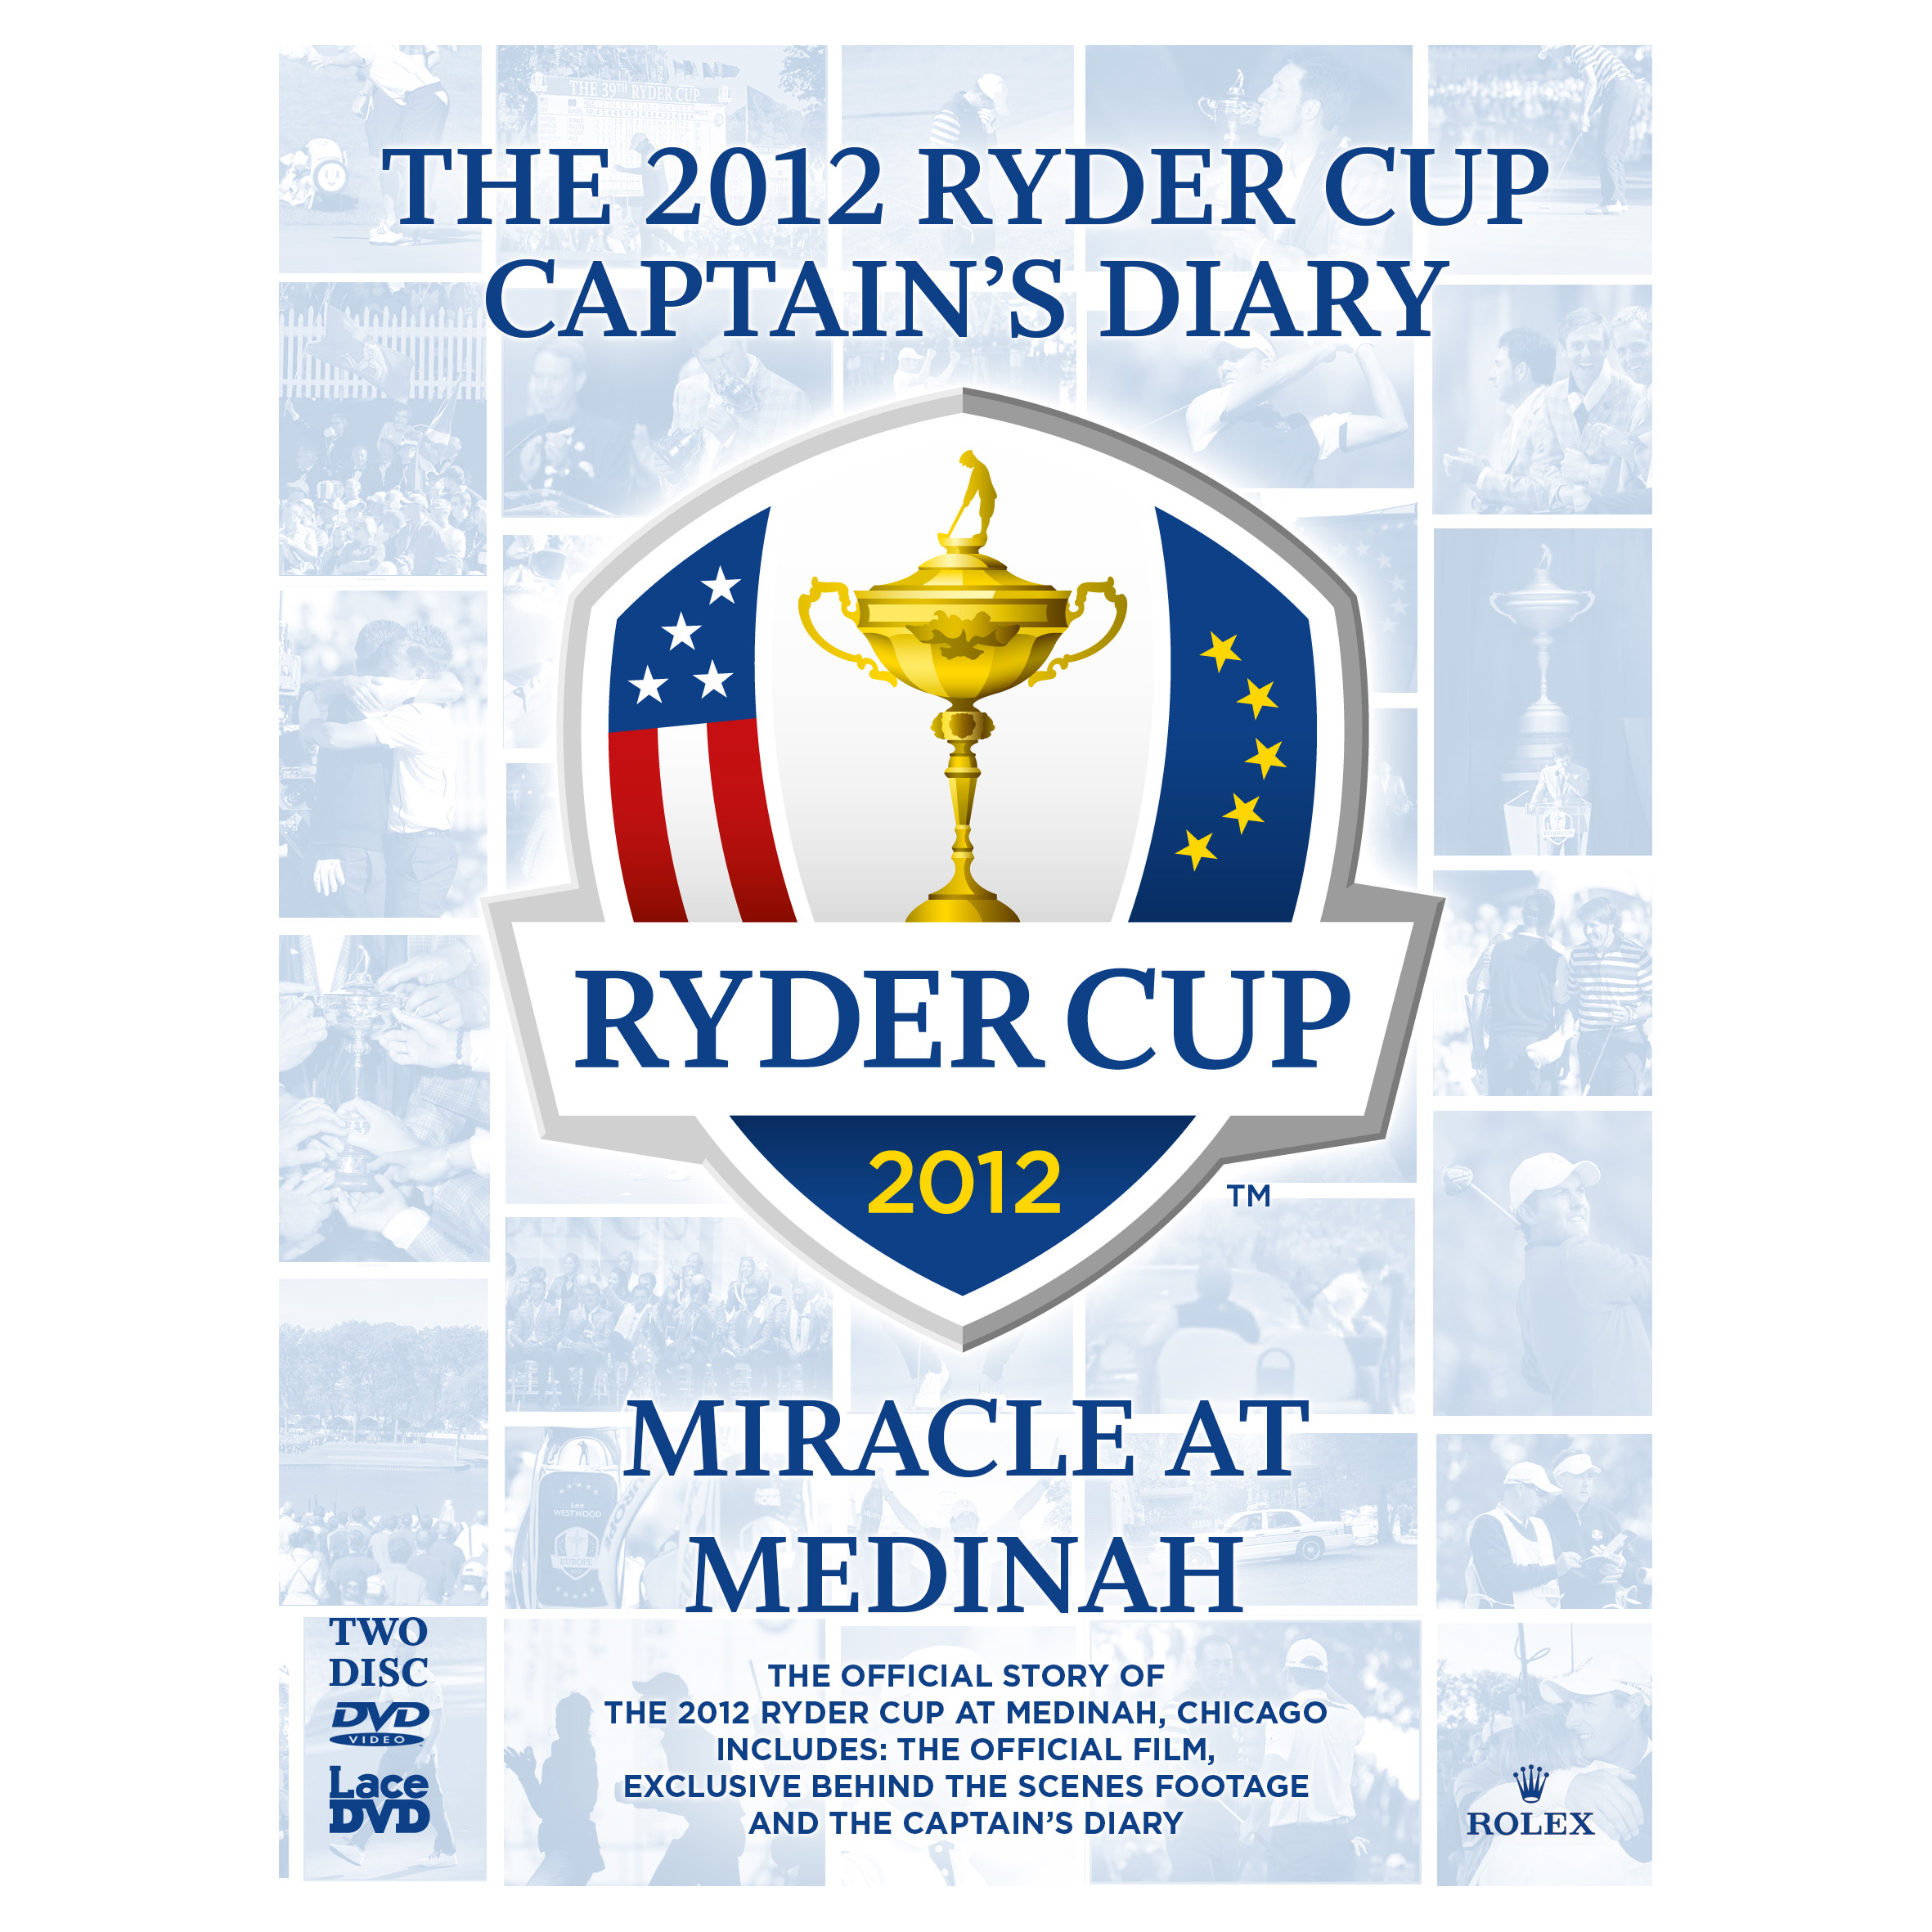 The Ryder Cup The 2012 Medinah Diary and Official Film (39th) DVD